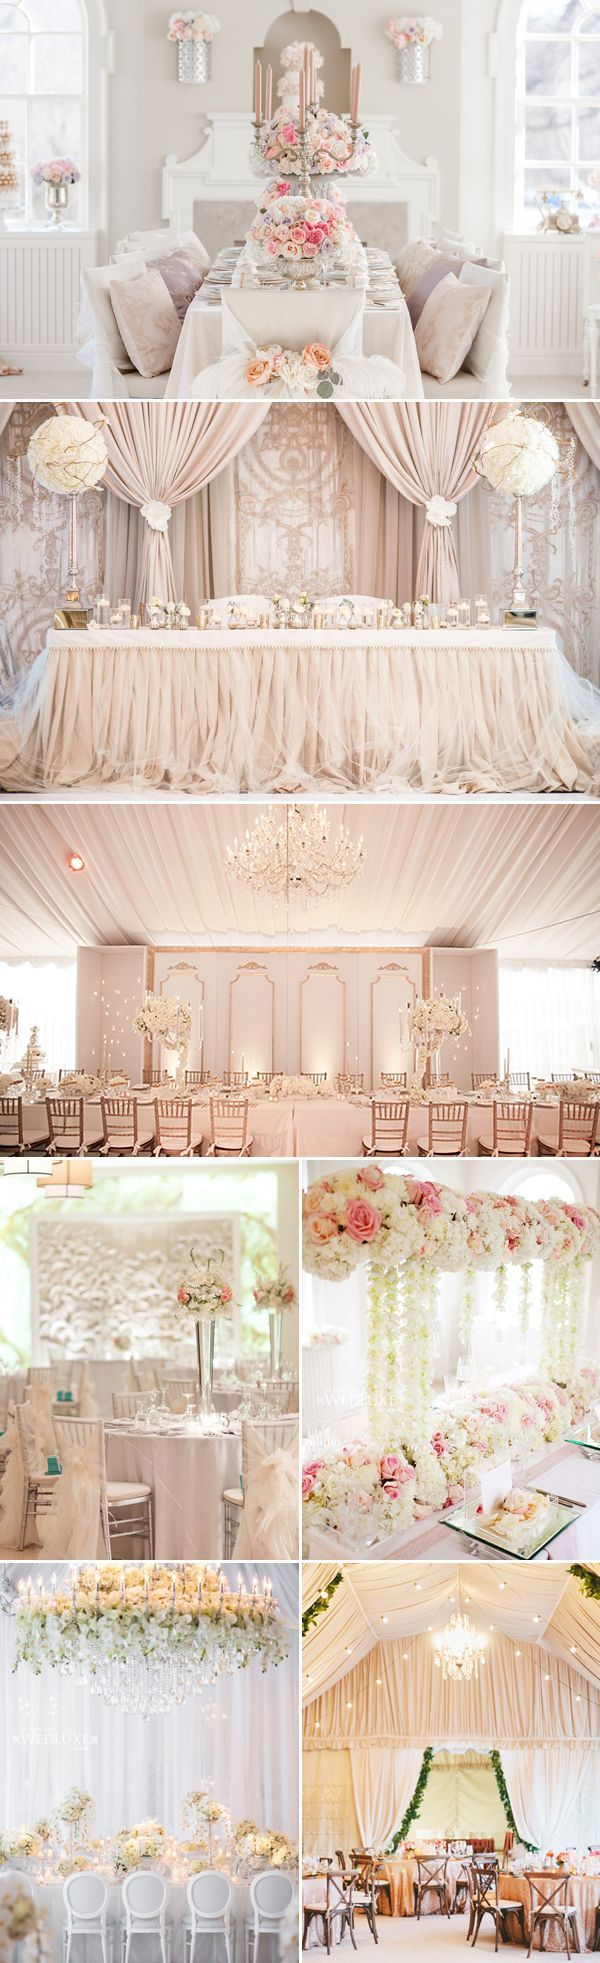 Wedding decorations luxury  This Weeks   Elegant Outdoor Wedding Decorations Minimalist